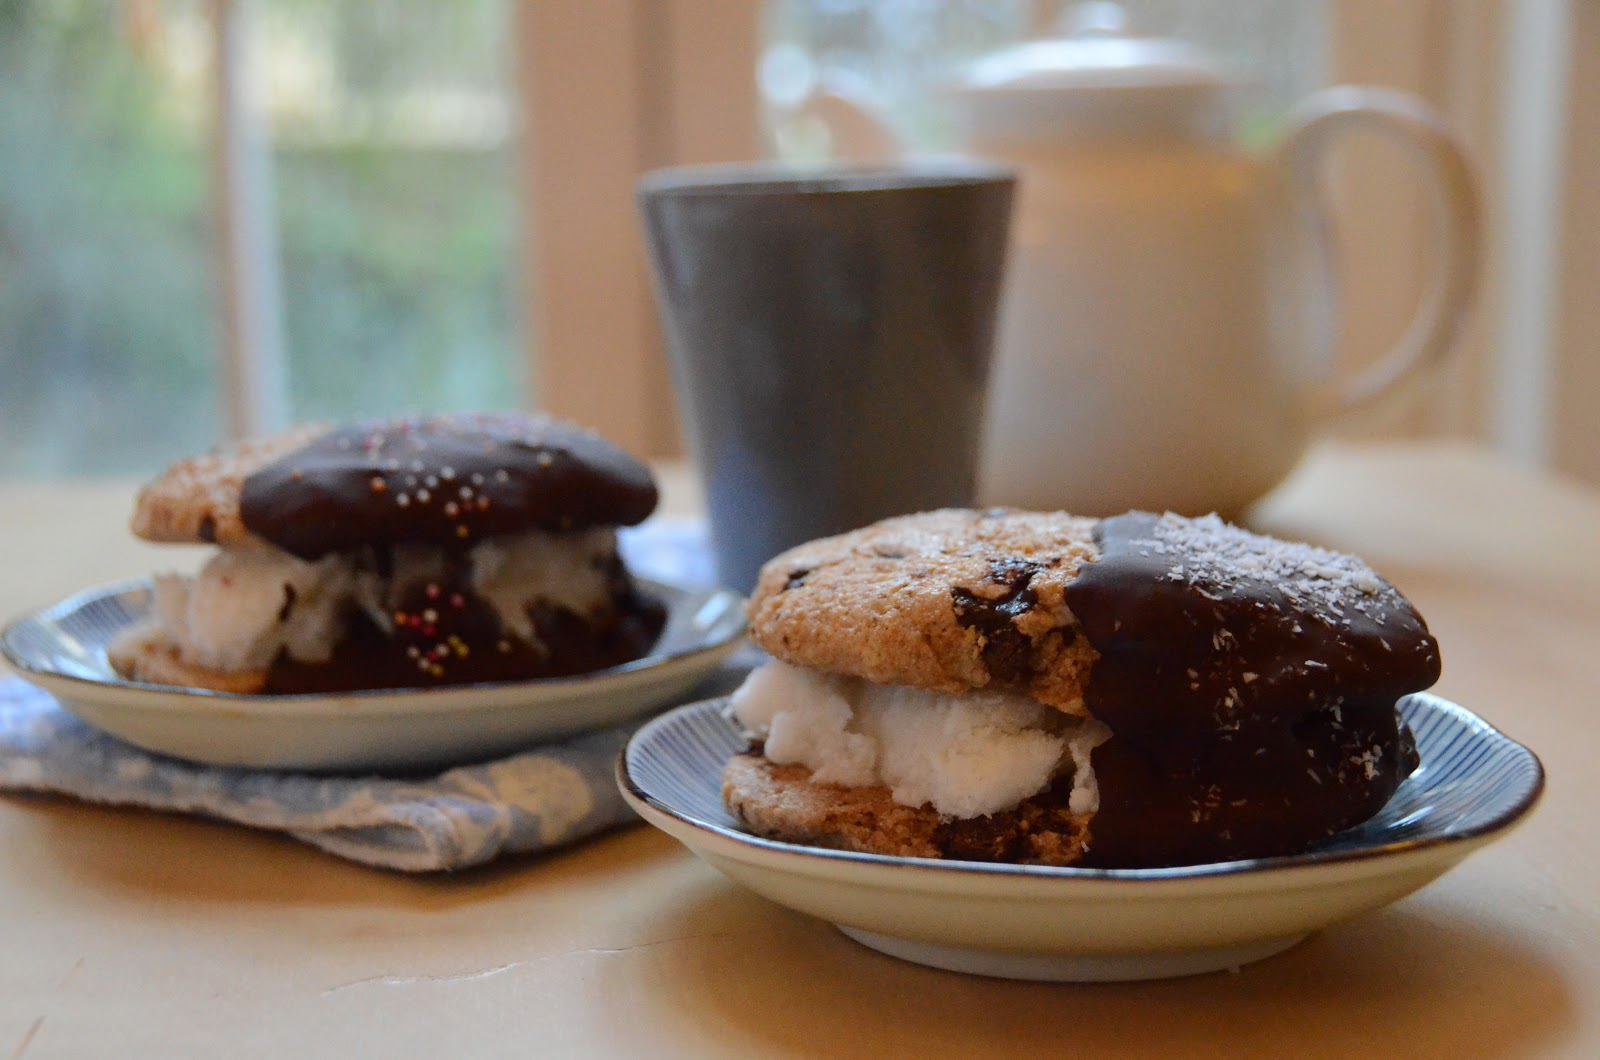 ... !: Chef Chloé's Chocolate Dipped Ice Cream Cookie Sandwiches